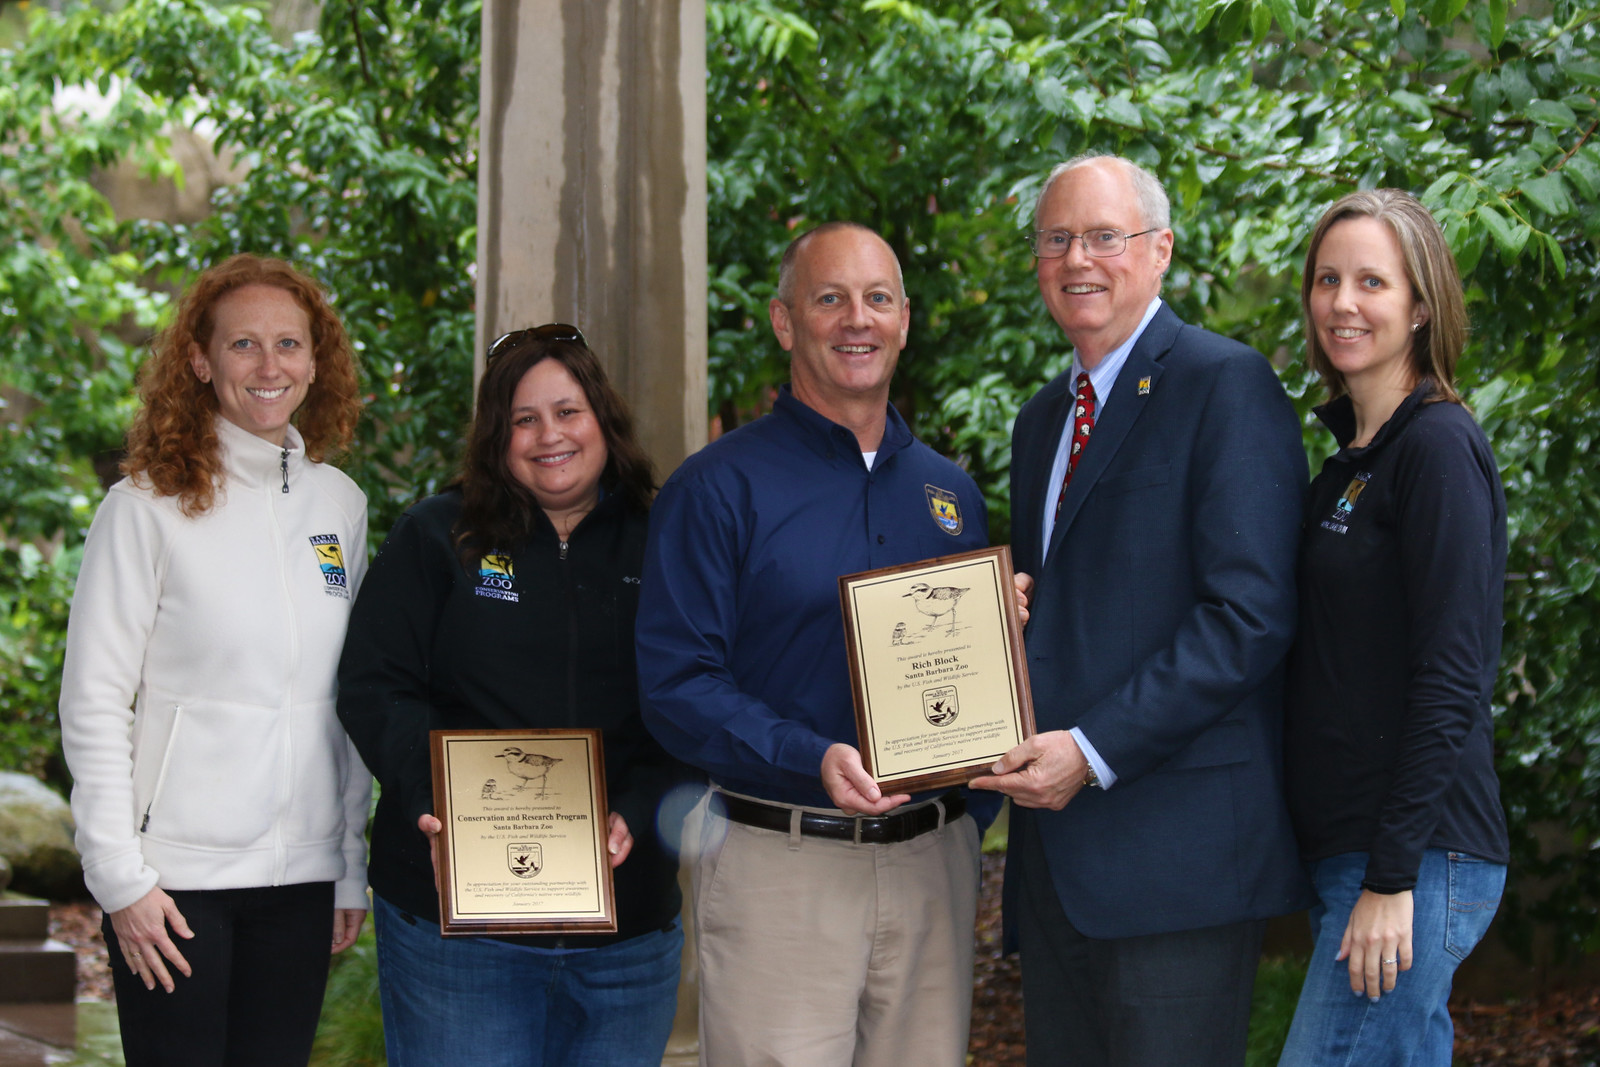 Santa Barbara Zoo Conservation and Research team accepts award from U.S. Fish and Wildlife Service Field Supervisor Steve Henry for Zoo's commitment to the recovery or rare wildlife.